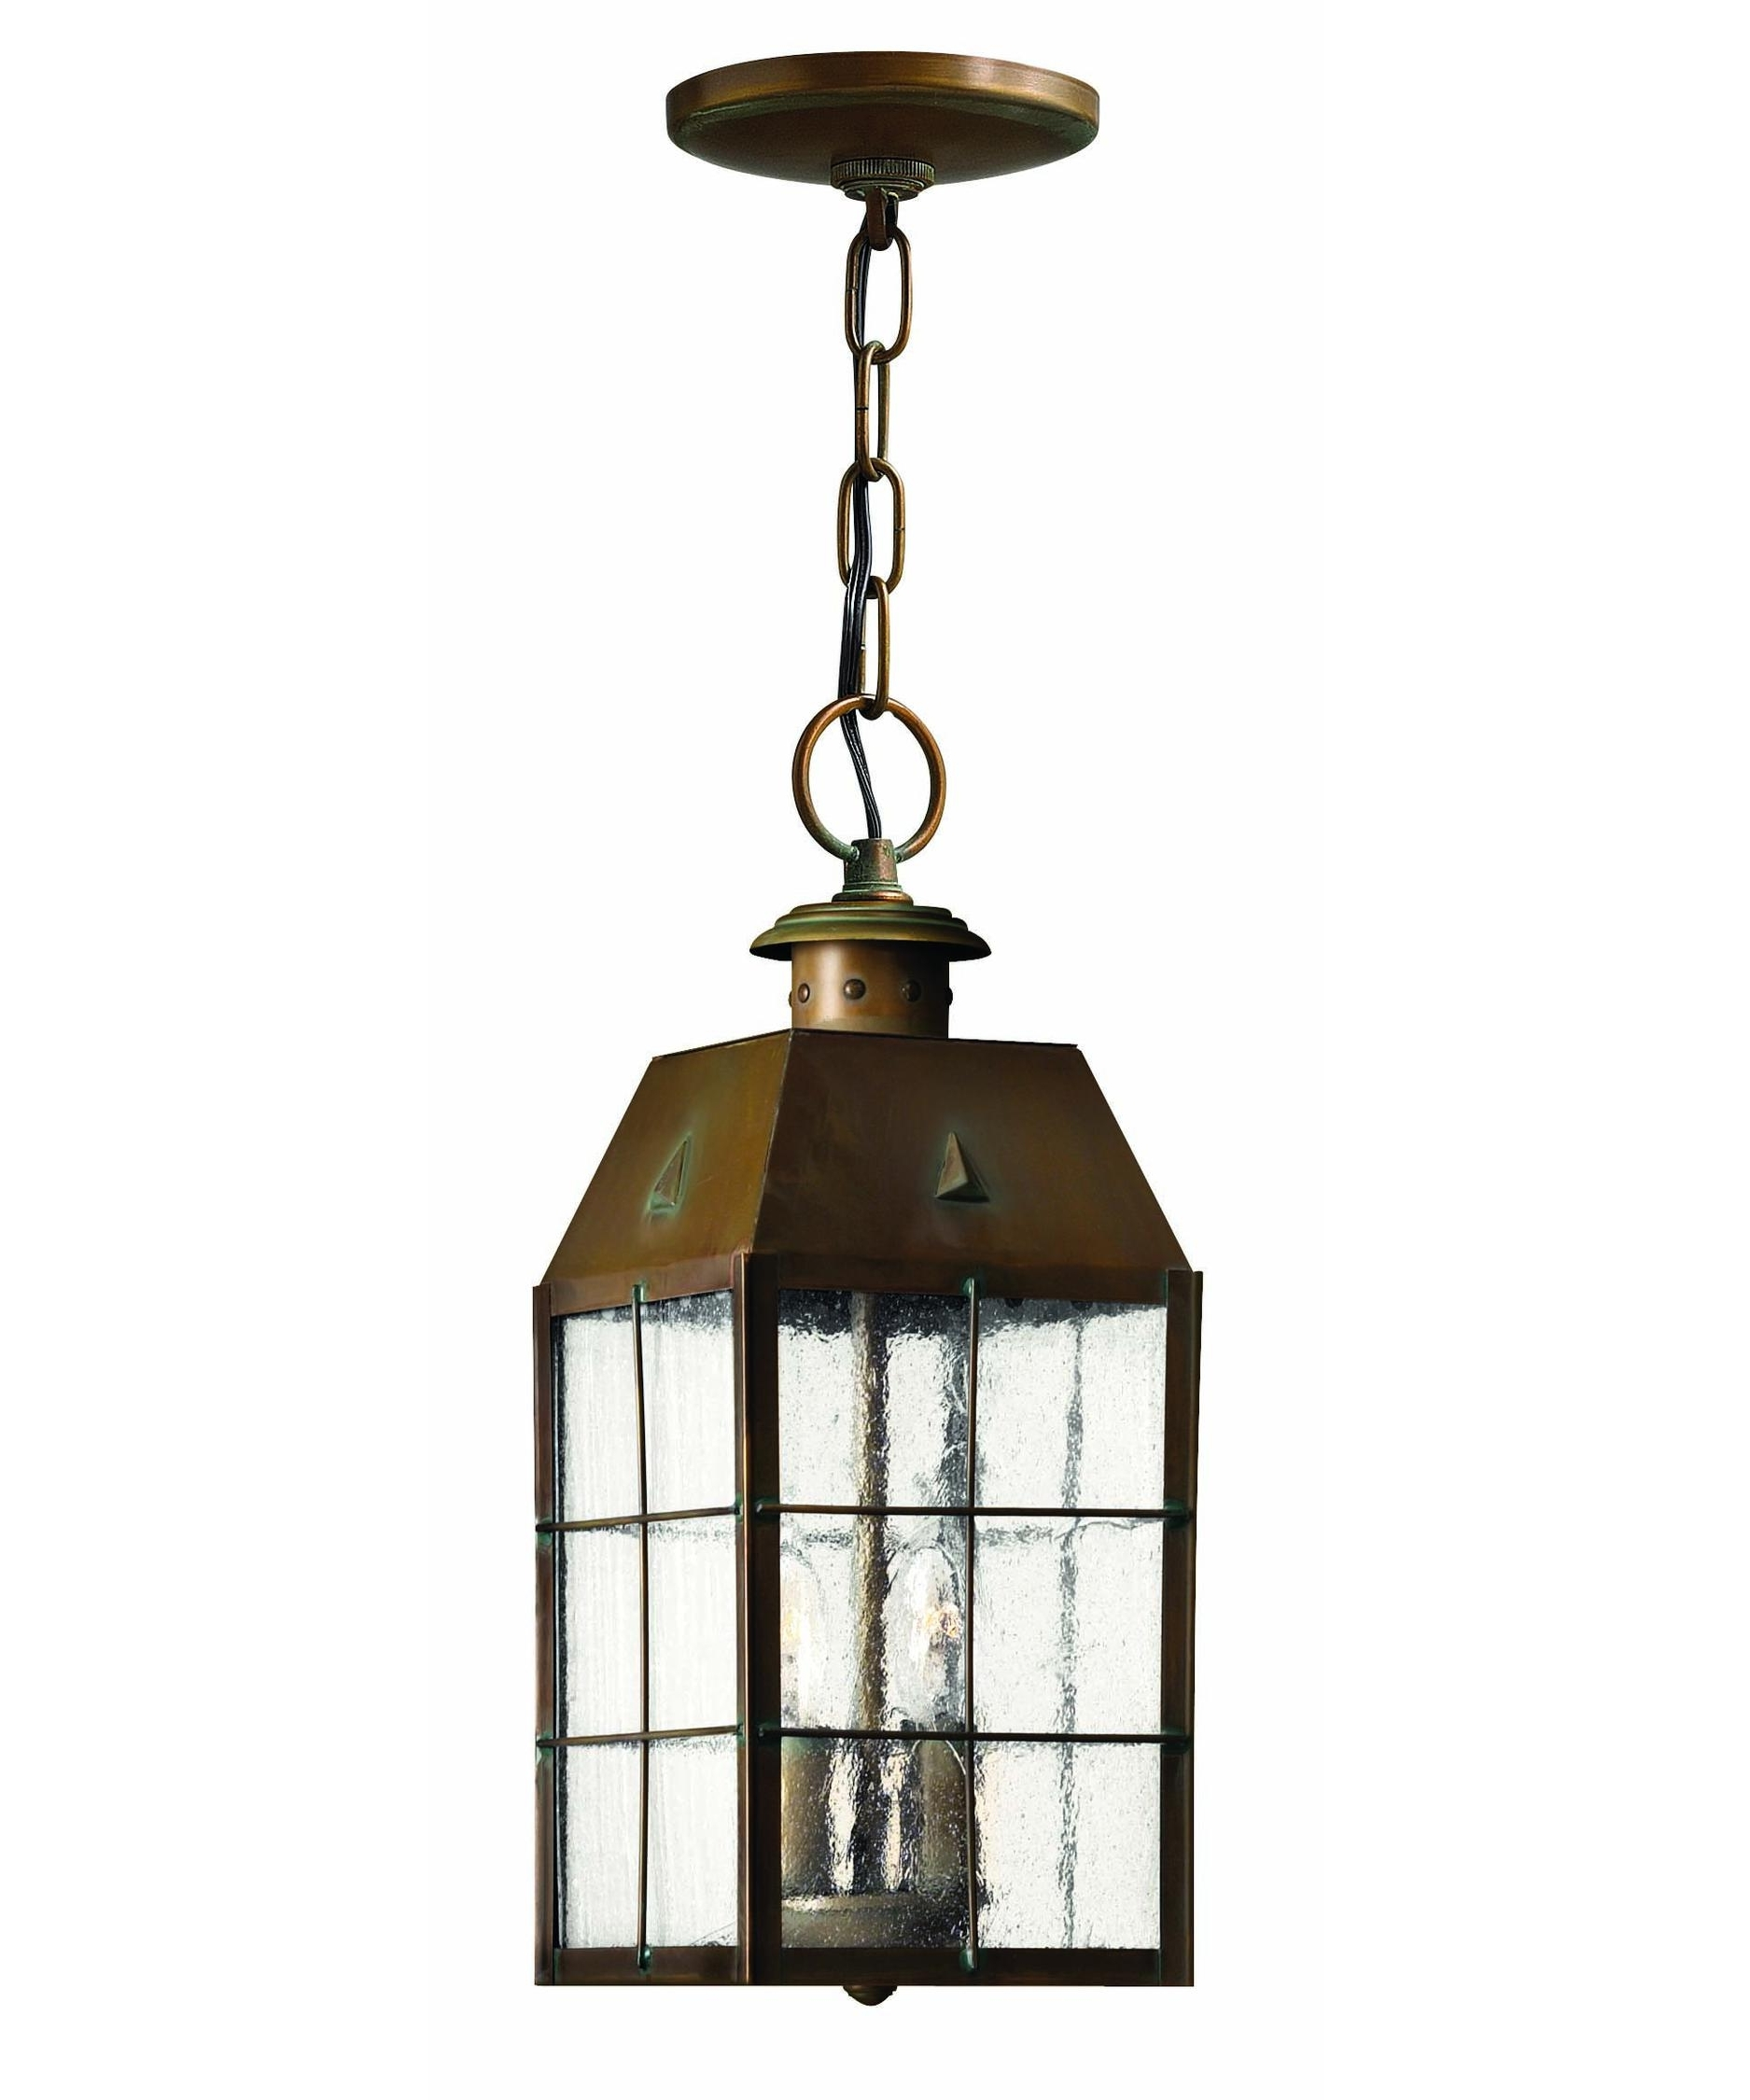 Hinkley Lighting 2372 Nantucket 6 Inch Wide 2 Light Outdoor Hanging Pertaining To Current Outdoor Ceiling Mount Porch Lights (View 5 of 20)